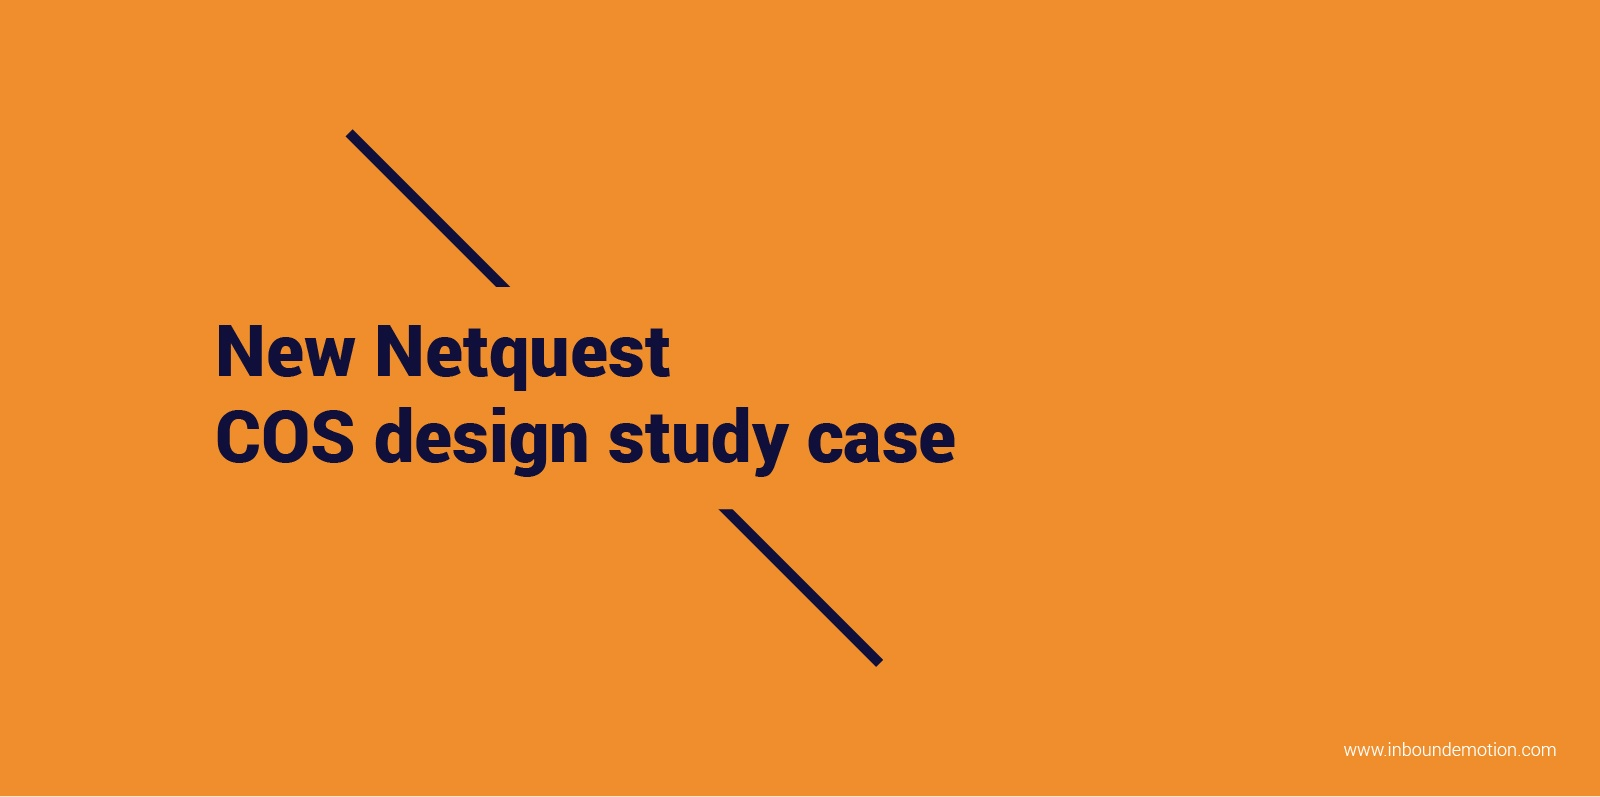 New-Netquest-COS-design-study-case-02.jpg